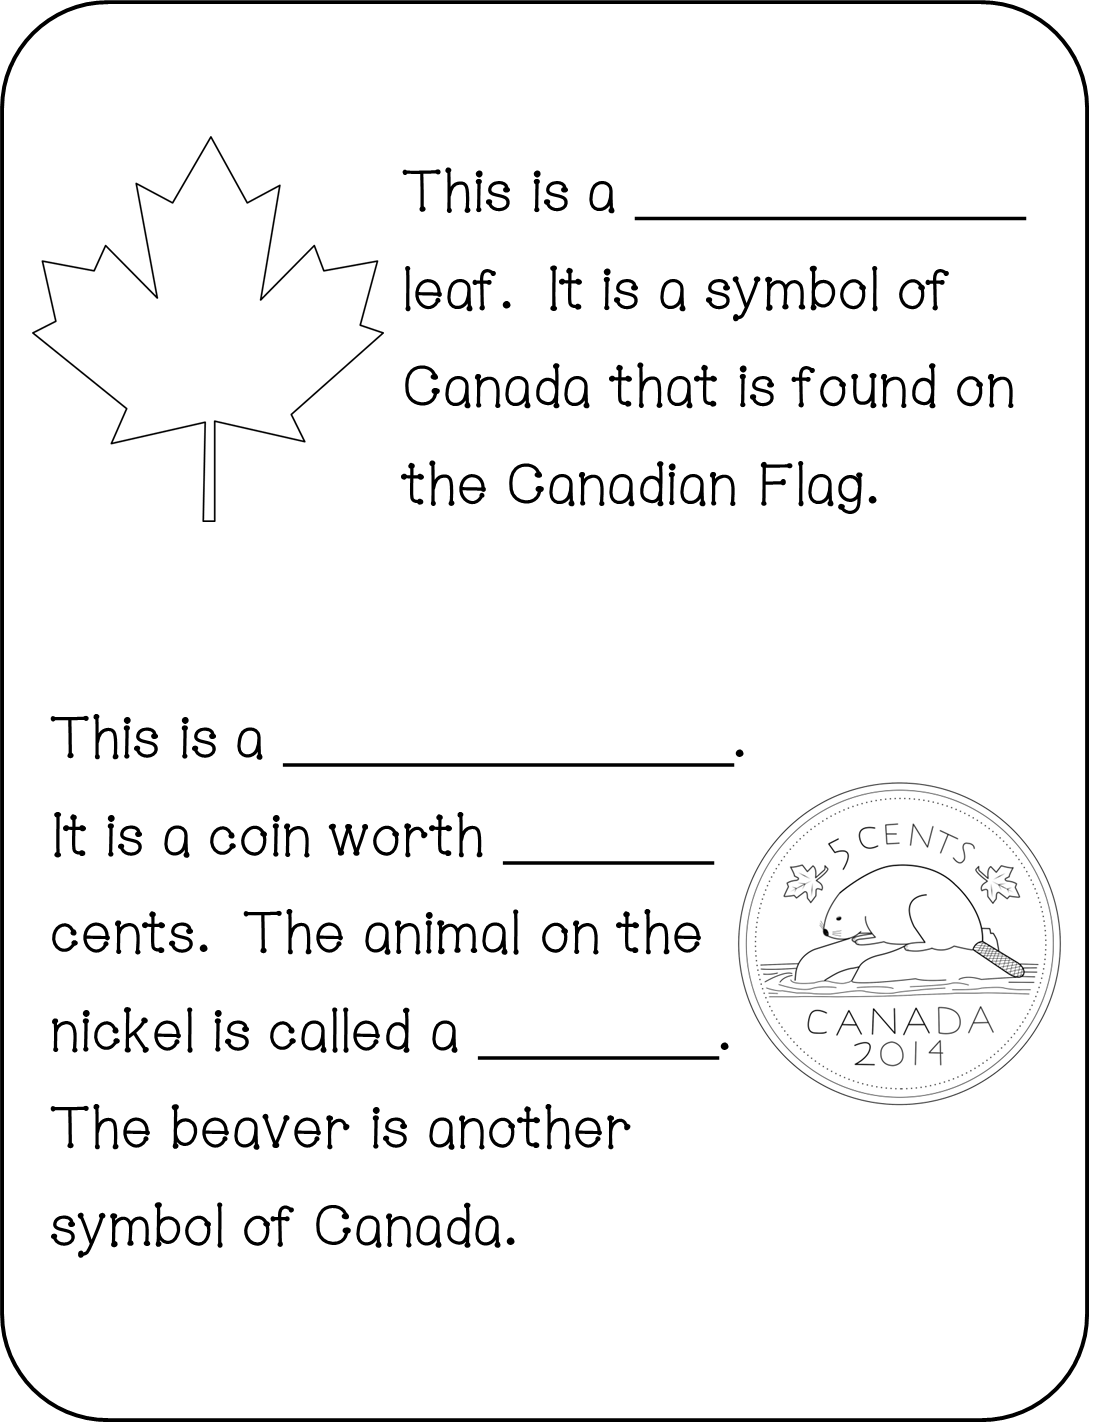 All About Canada Symbols Social Studies And Teaching Ideas